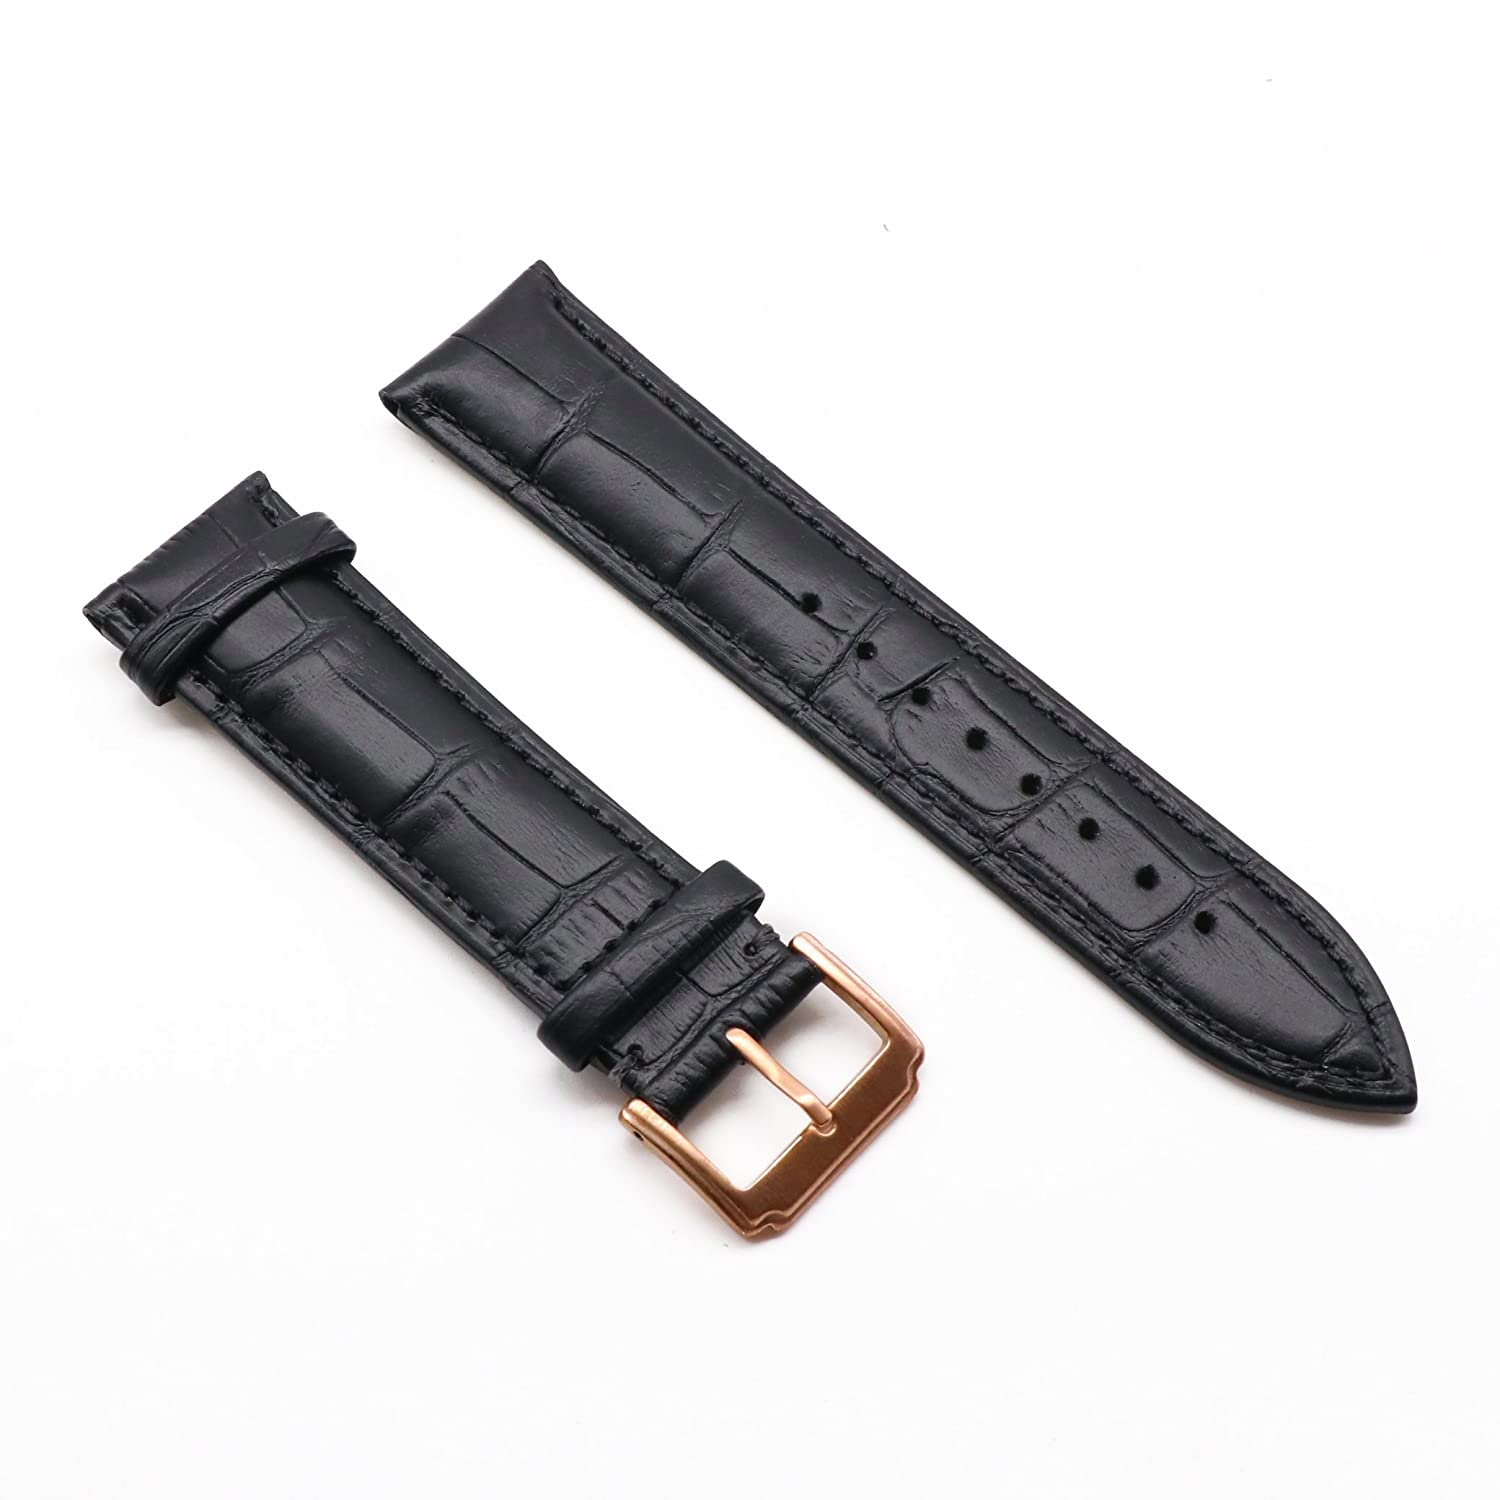 c78a01b21 Amazon.com: AUTULET Black Leather Watch Strap 23MM with Rose Gold Buckle  Mens or Womens: Watches